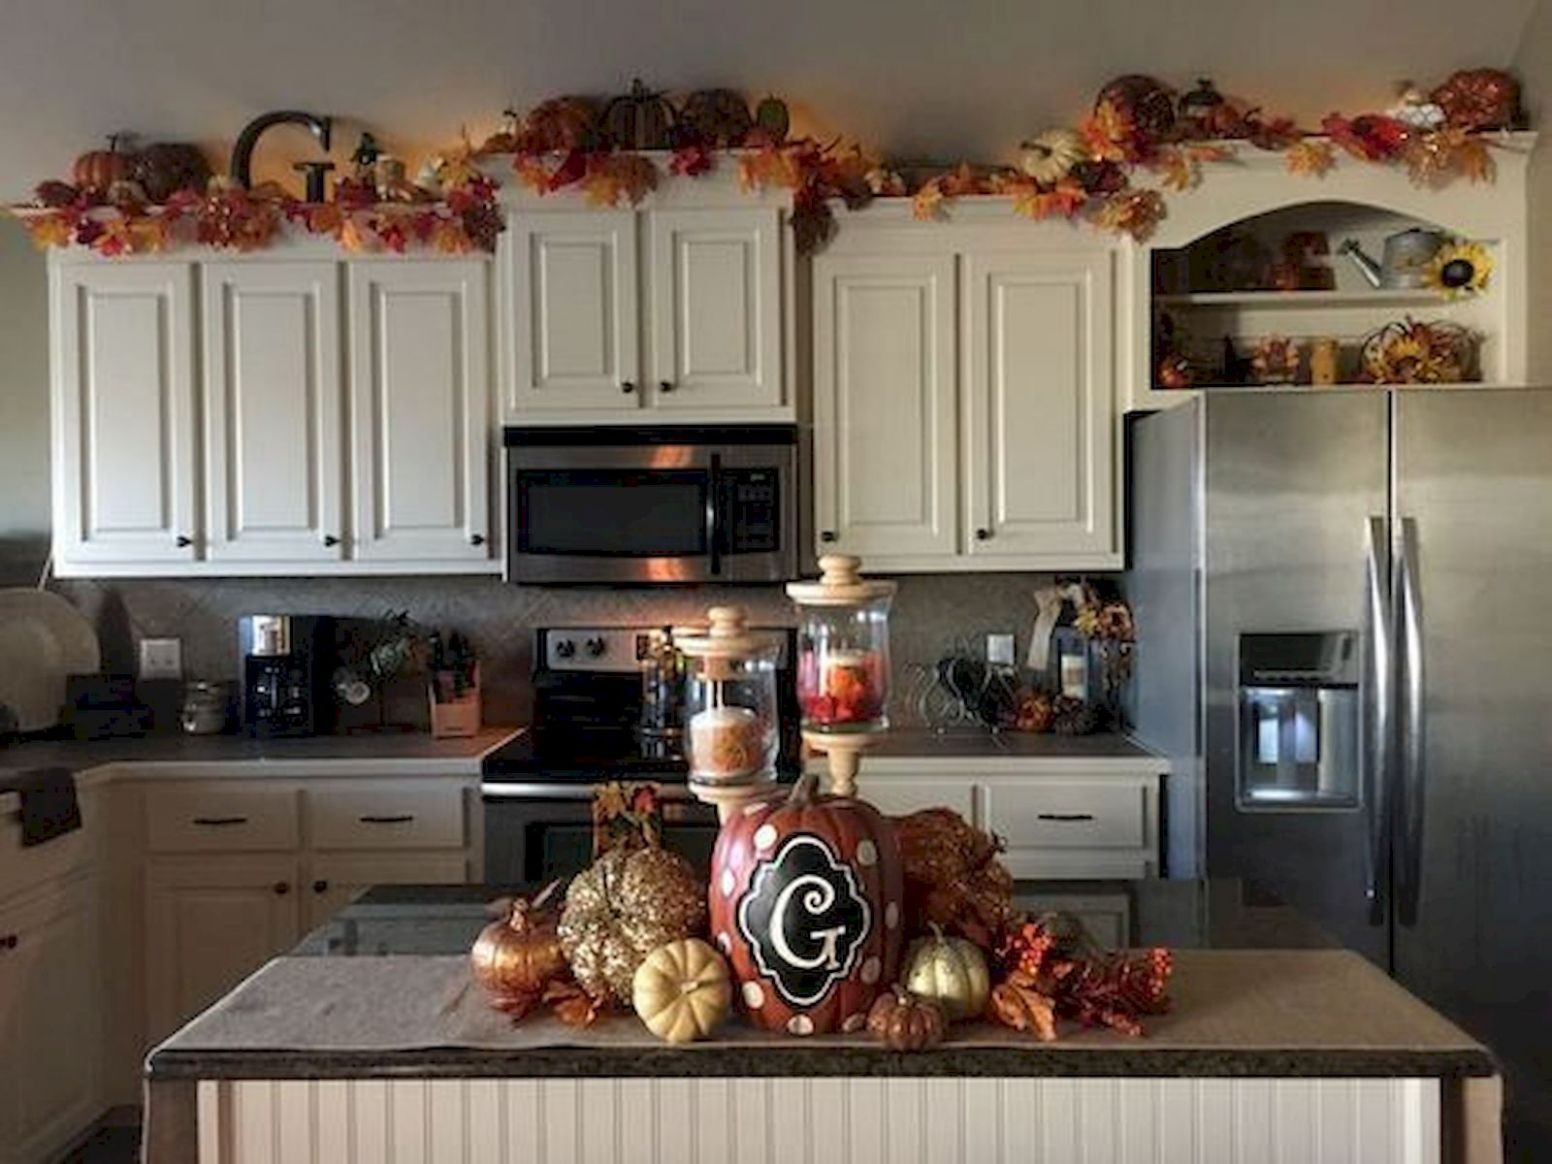 8 Gorgeous Halloween Kitchen Cabinets Decor Ideas (8) - artmyideas